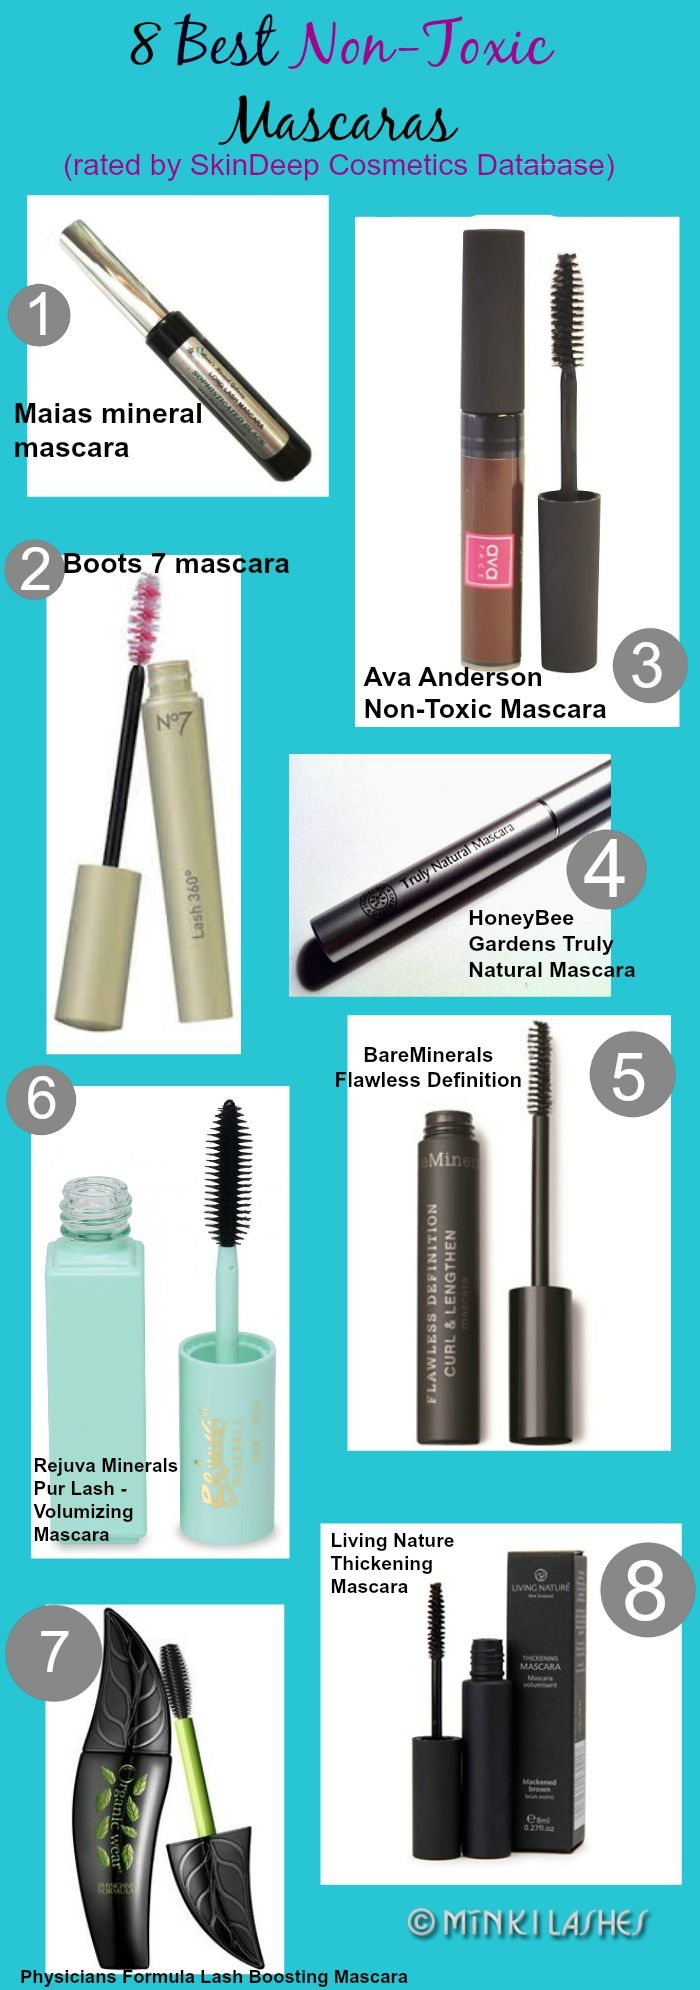 While we are all scouting for the non-toxic mascara's such as the ones above, we…